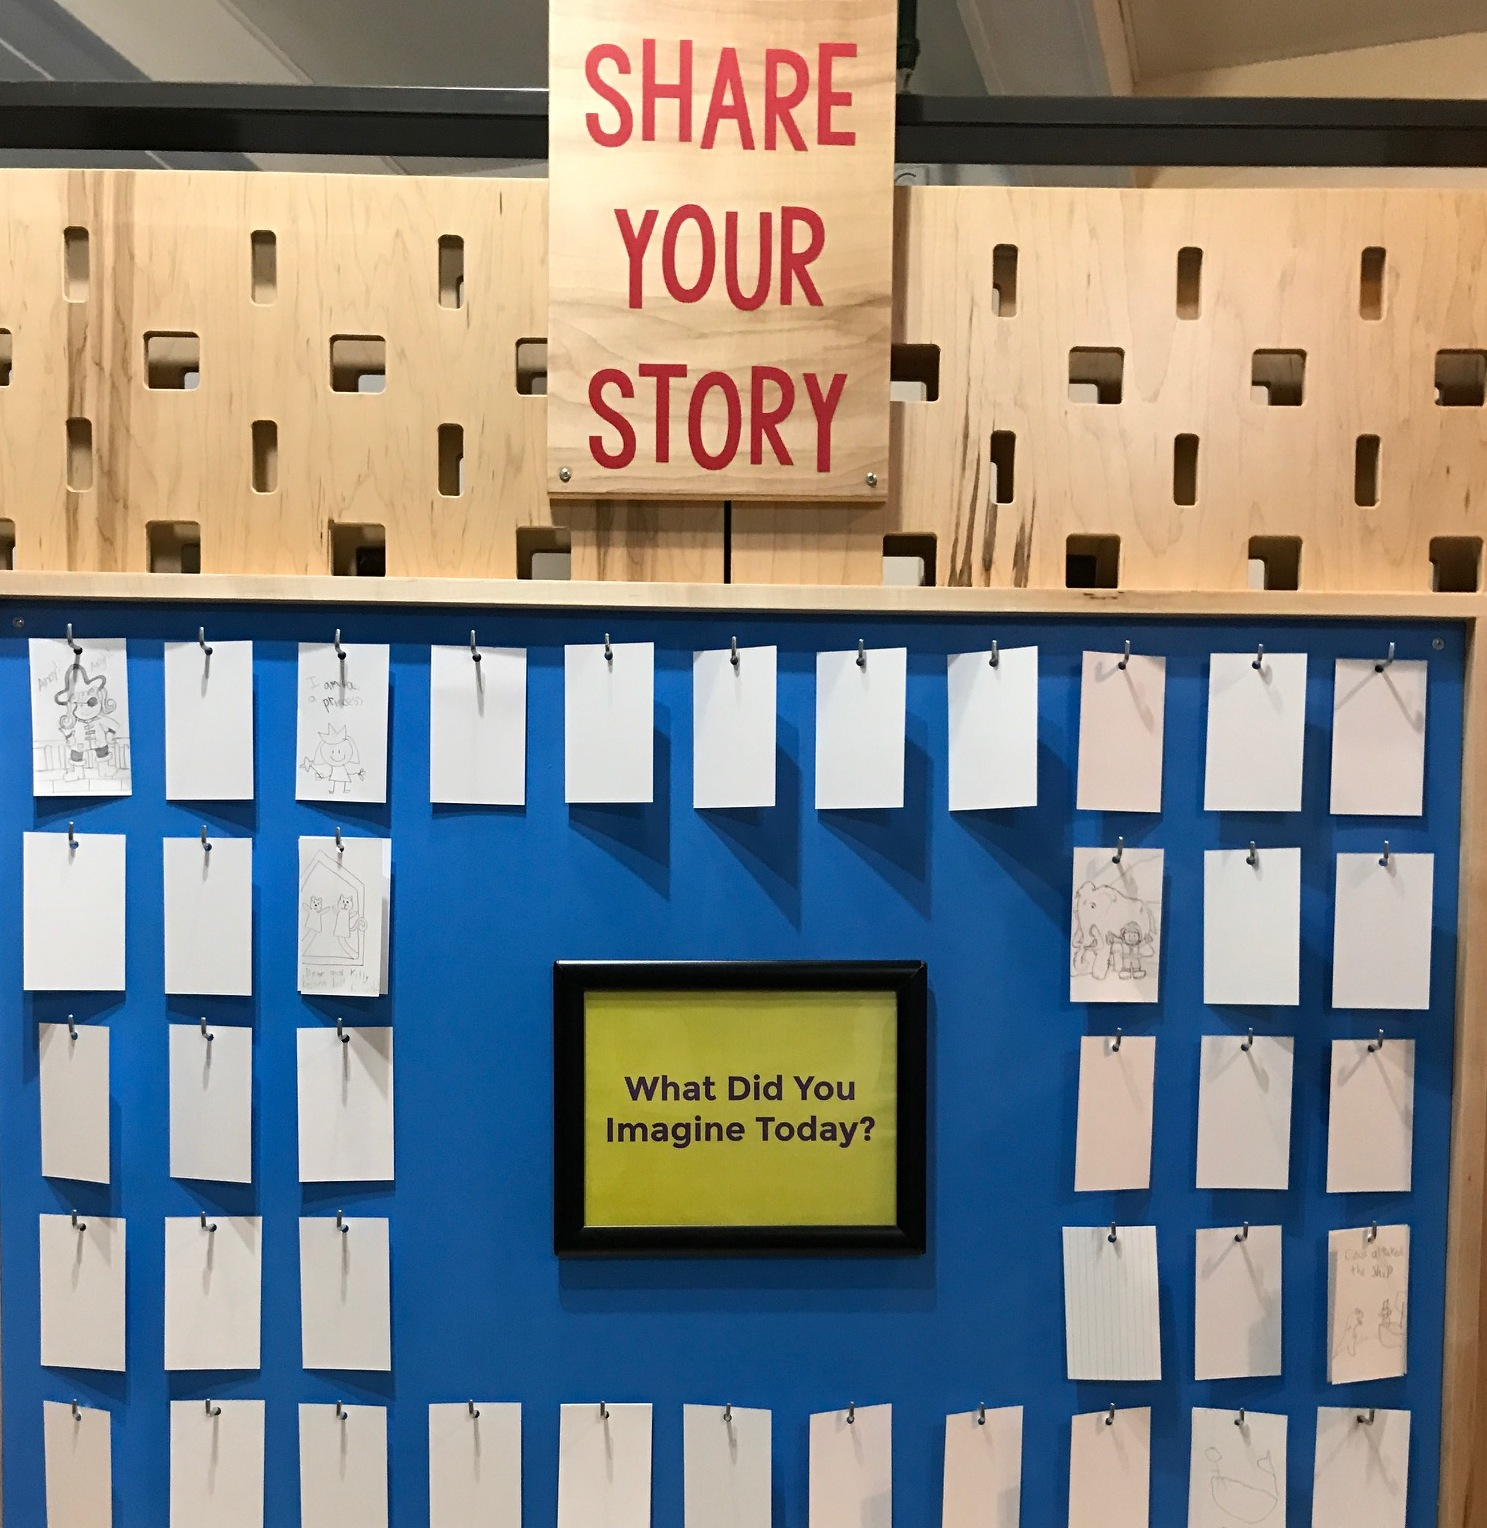 Share Your Story exhibit with sign asking: What Did You Imagine Today?